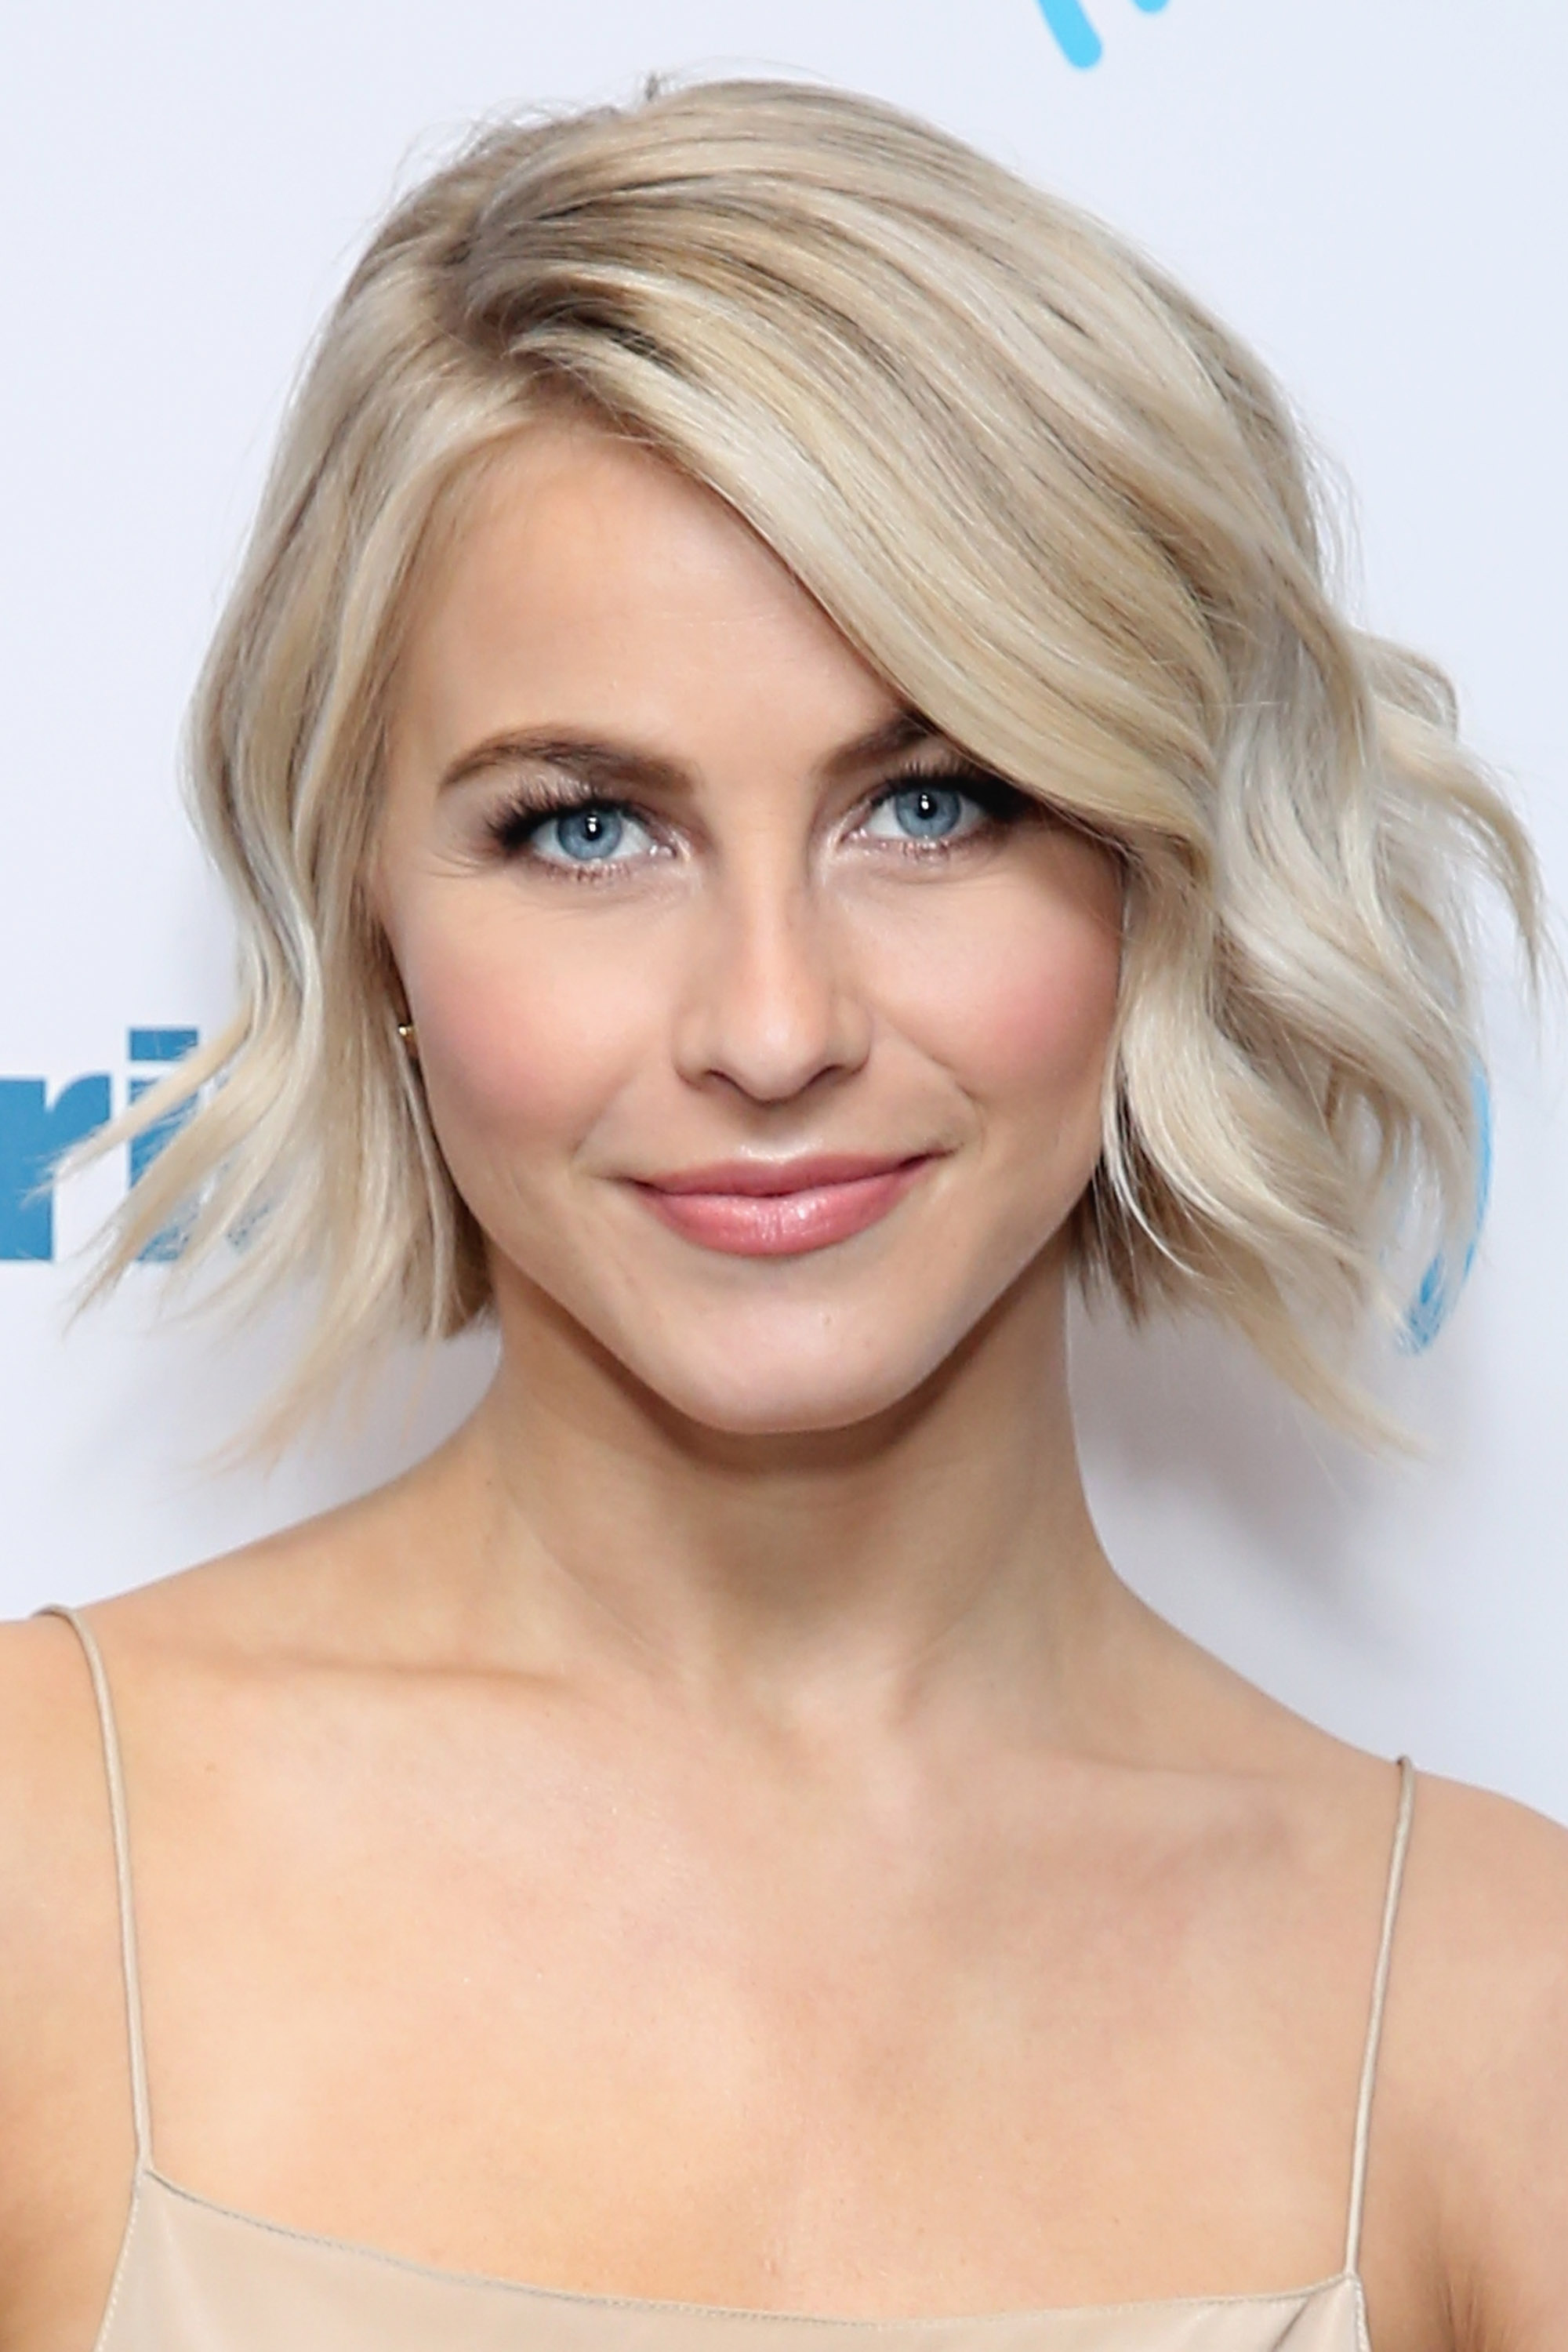 Blonde Hair   www.pixshark.com - Images Galleries With A Bite! - photo #5